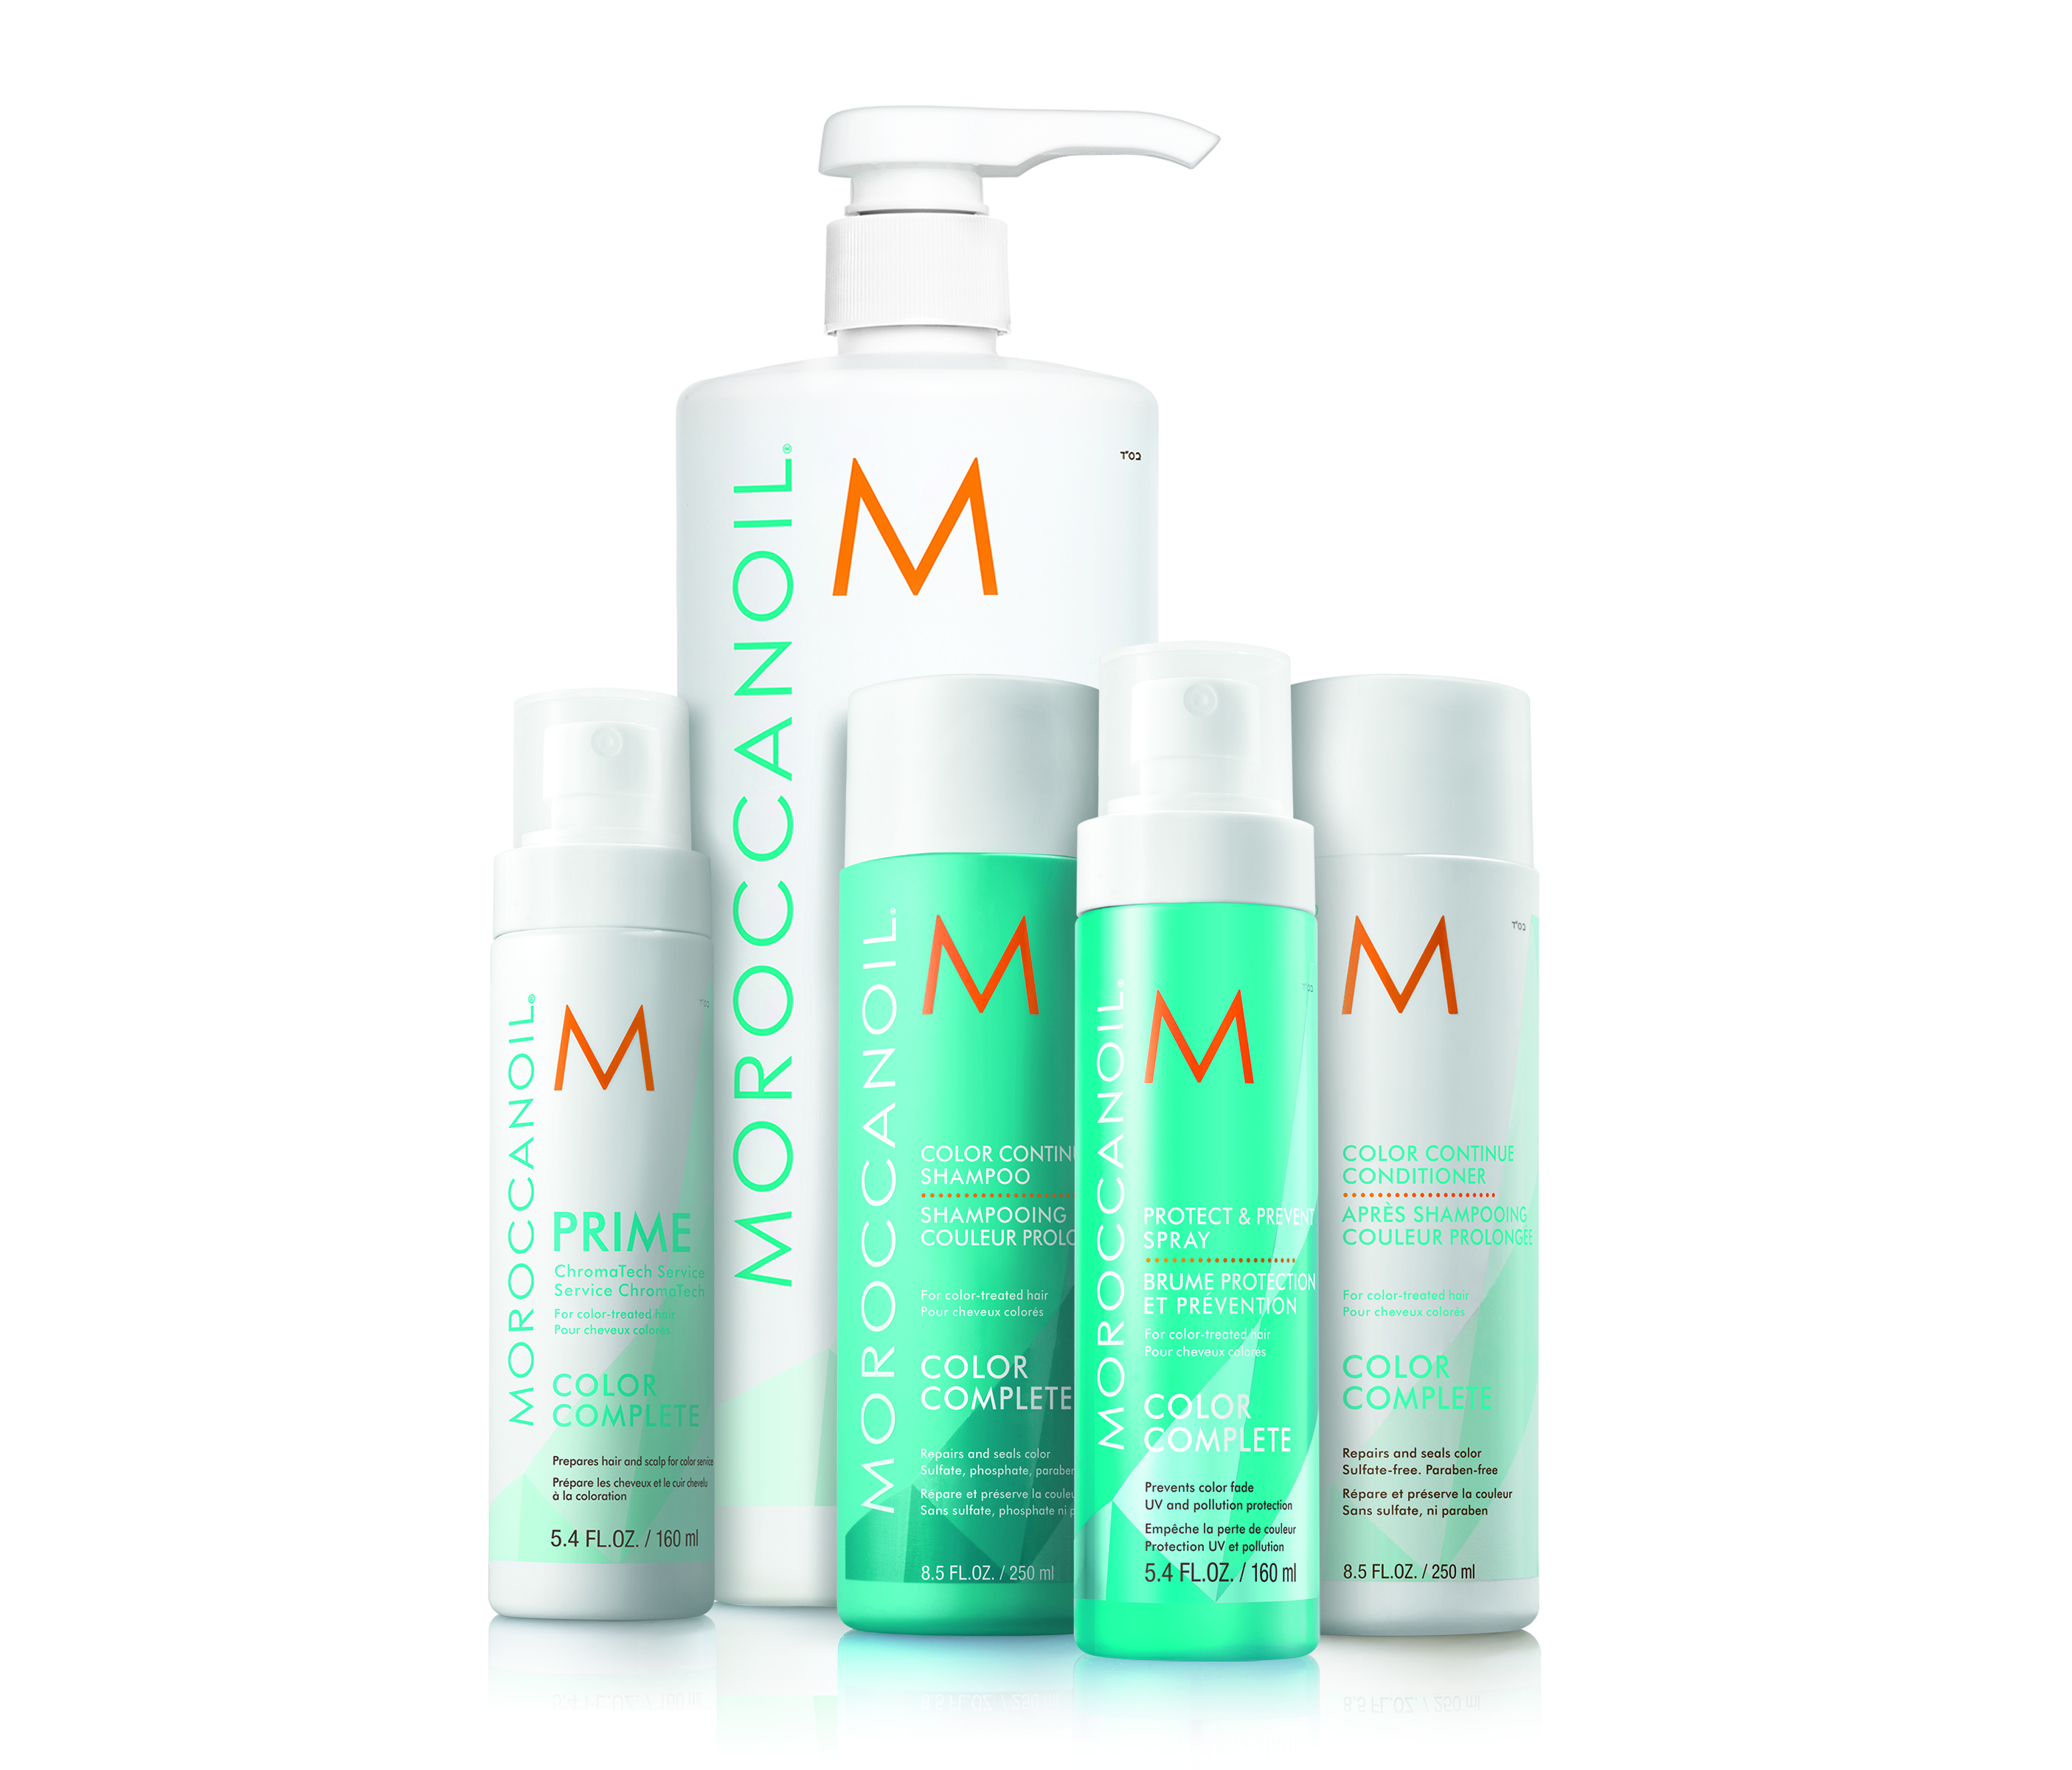 Moroccanoil Announces Color Complete Collection